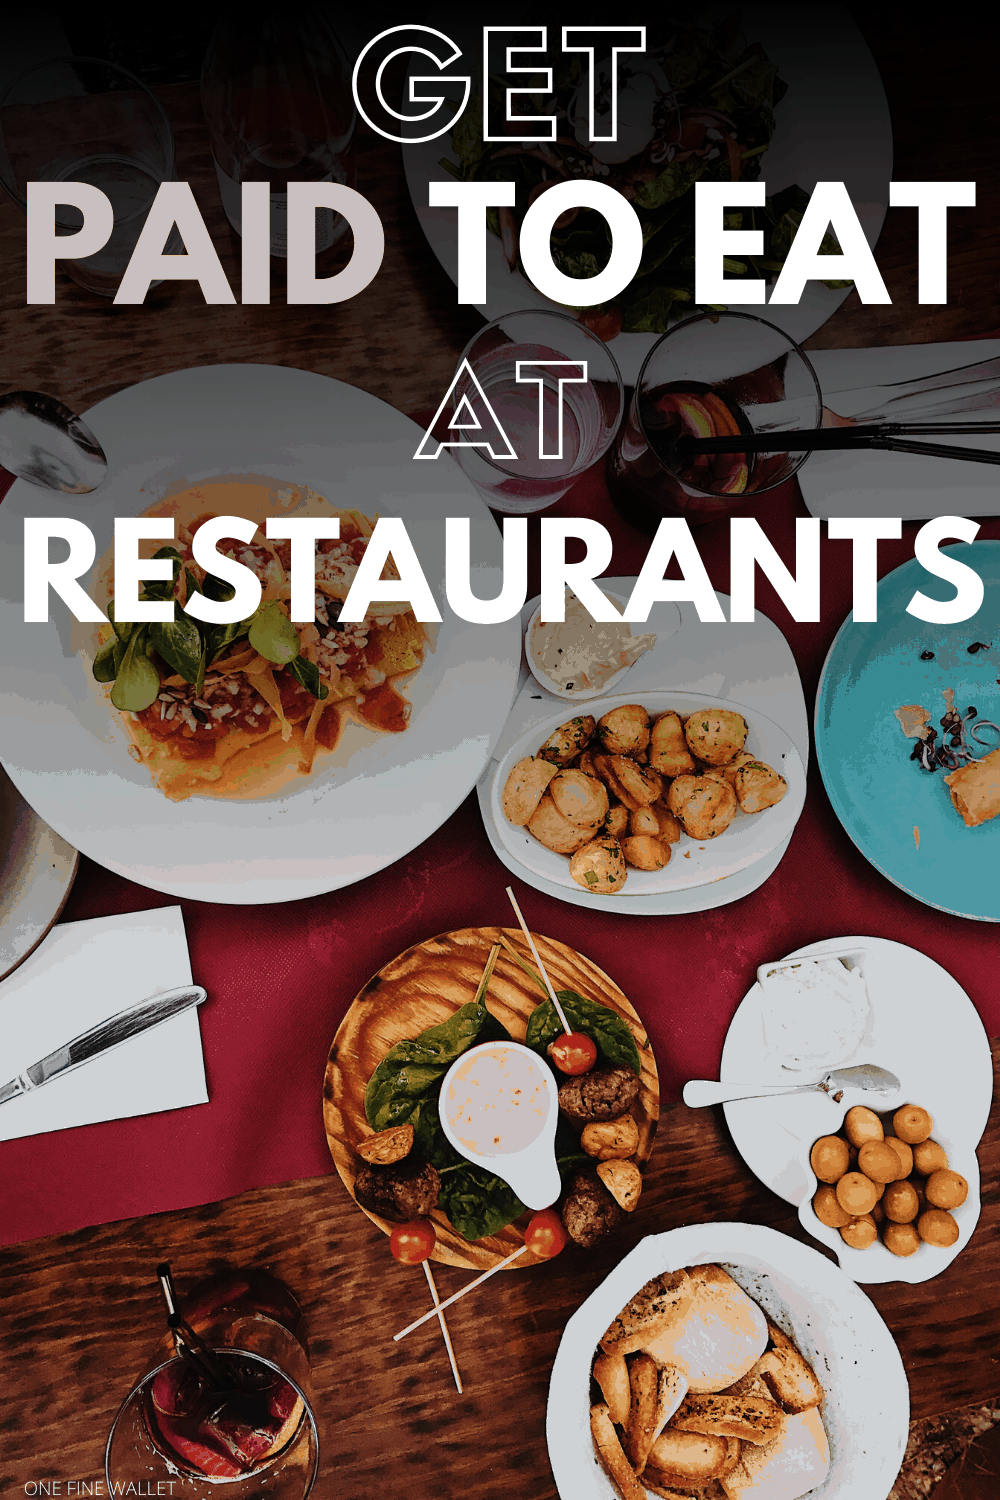 Get paid to eat out at restaurants with the Seated app. Get up to 30% off your bills using the Seated app